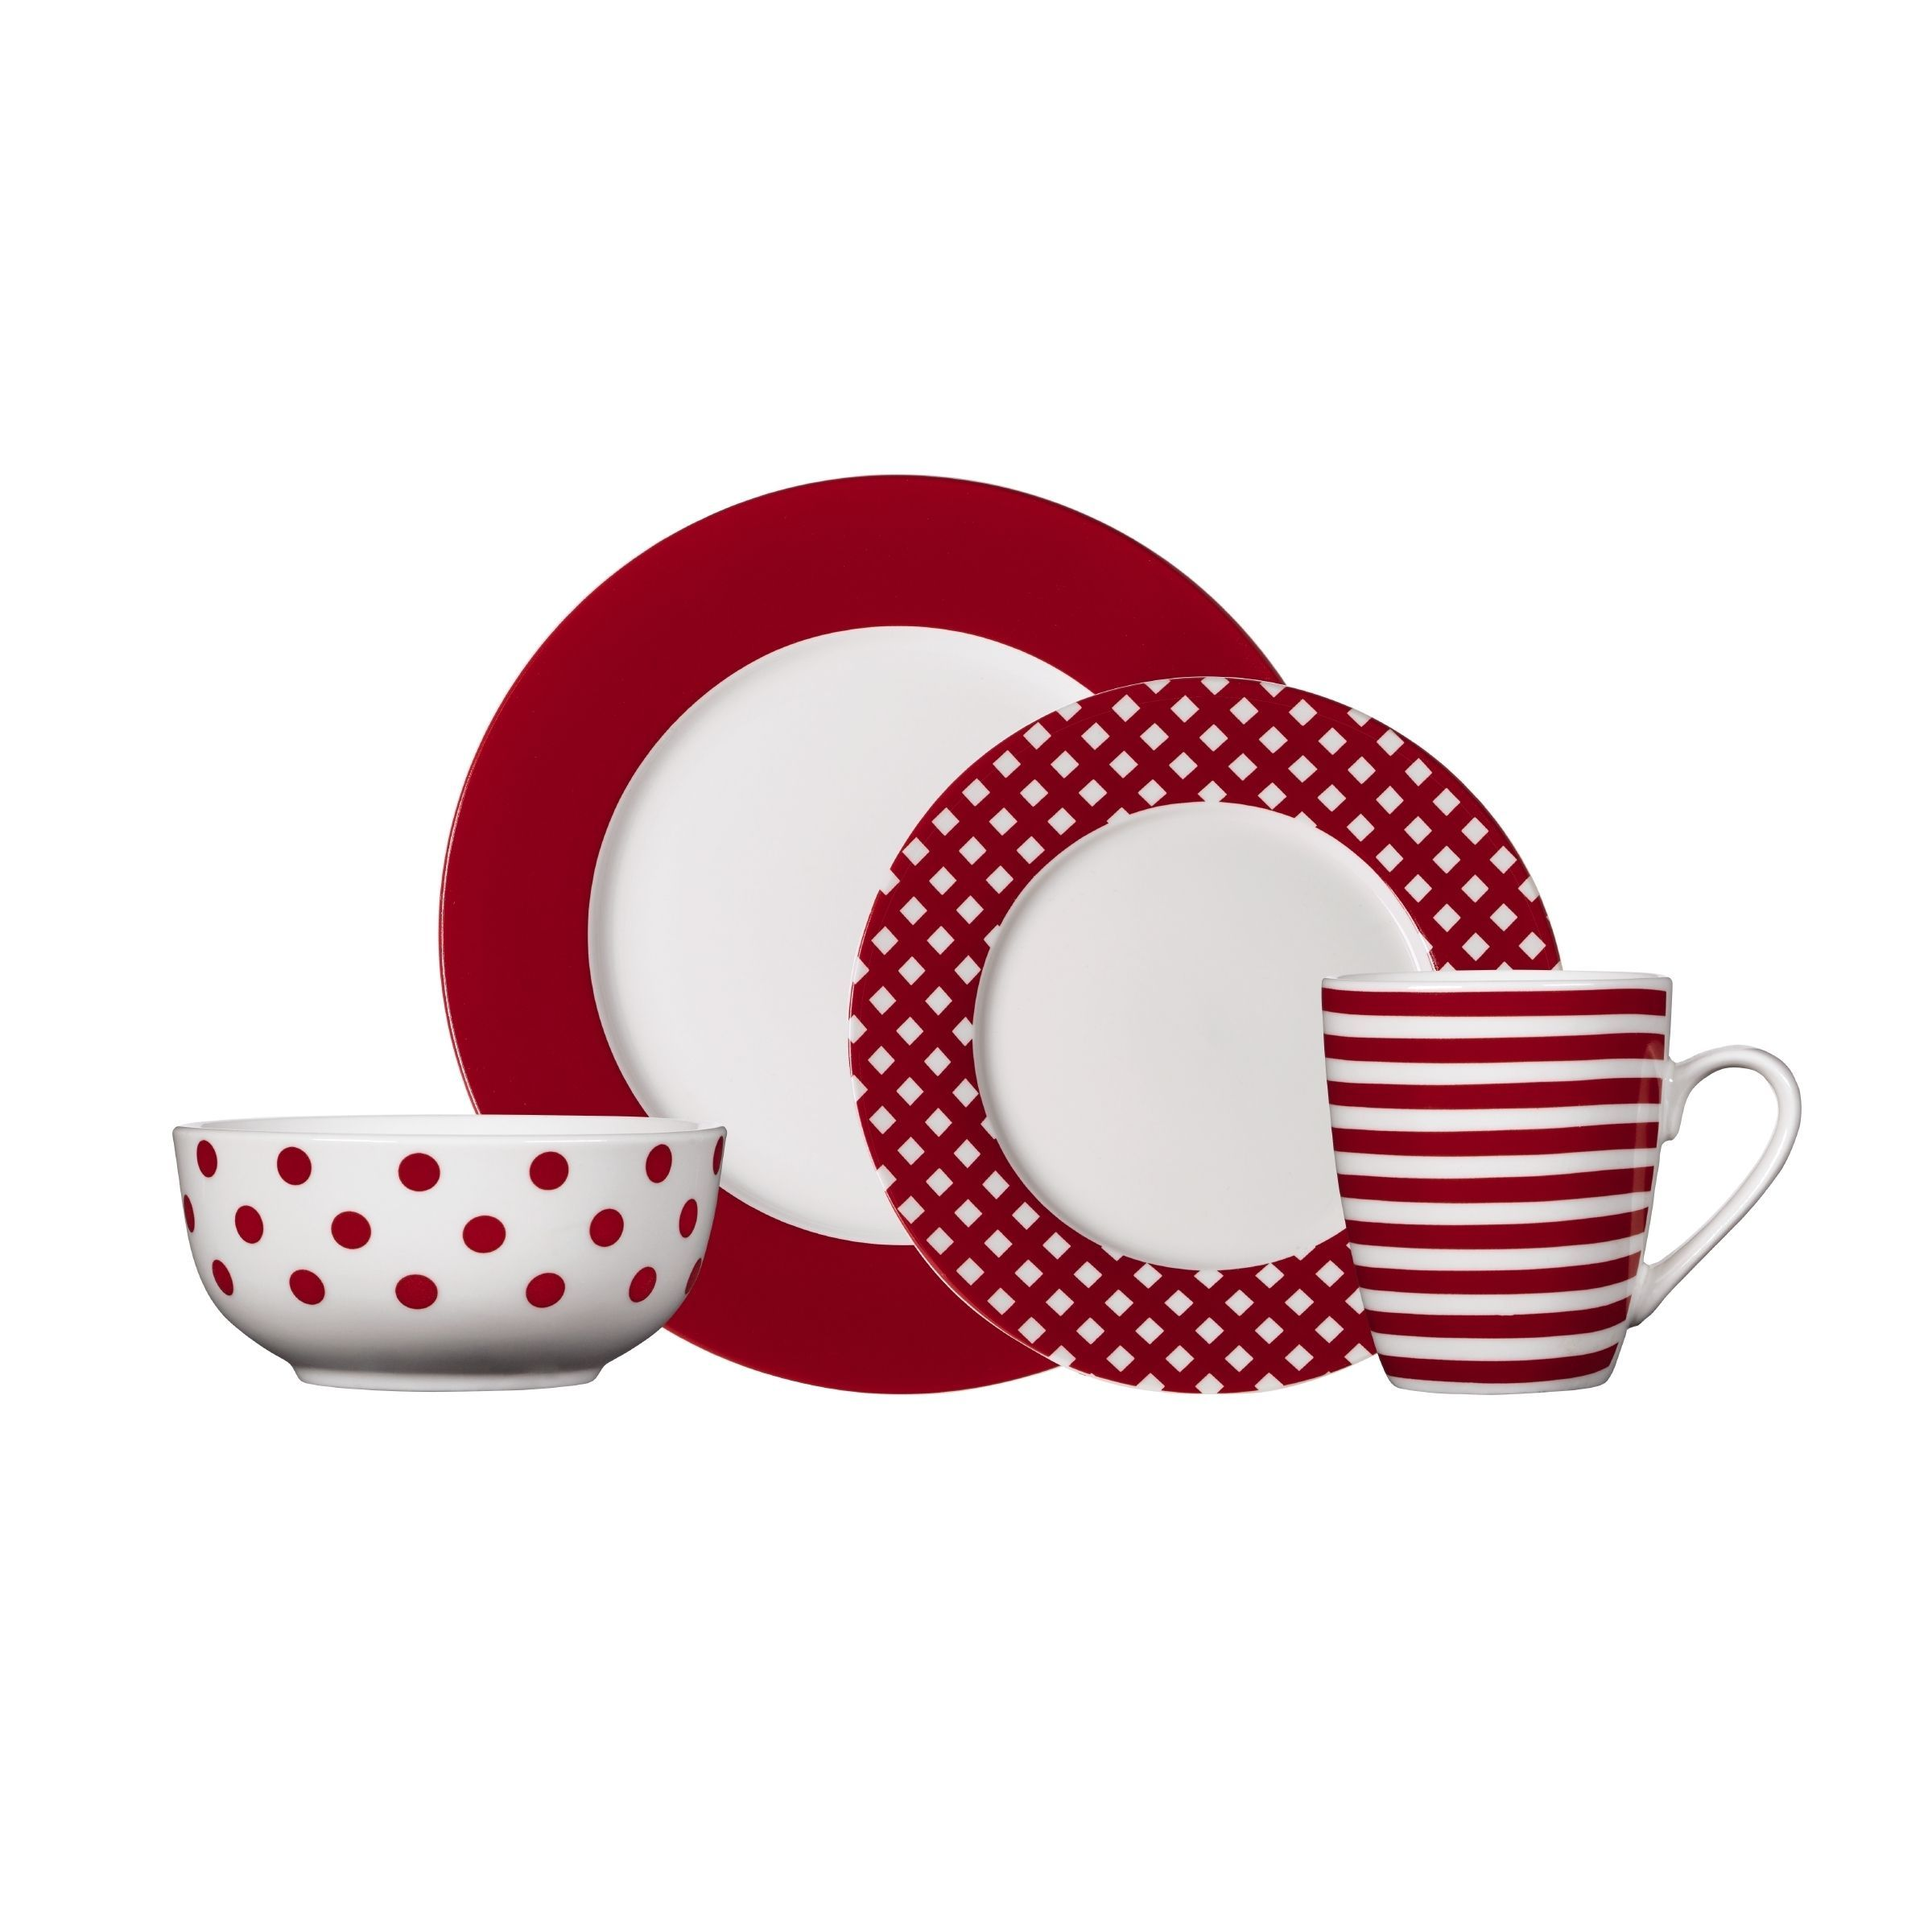 Pfaltzgraff Kenna Red Dinnerware Set (16-piece) (Pfaltzgraff Kenna Red 16 Piece  sc 1 st  Pinterest & Pfaltzgraff Kenna Red Dinnerware Set (16-piece) (Pfaltzgraff Kenna ...